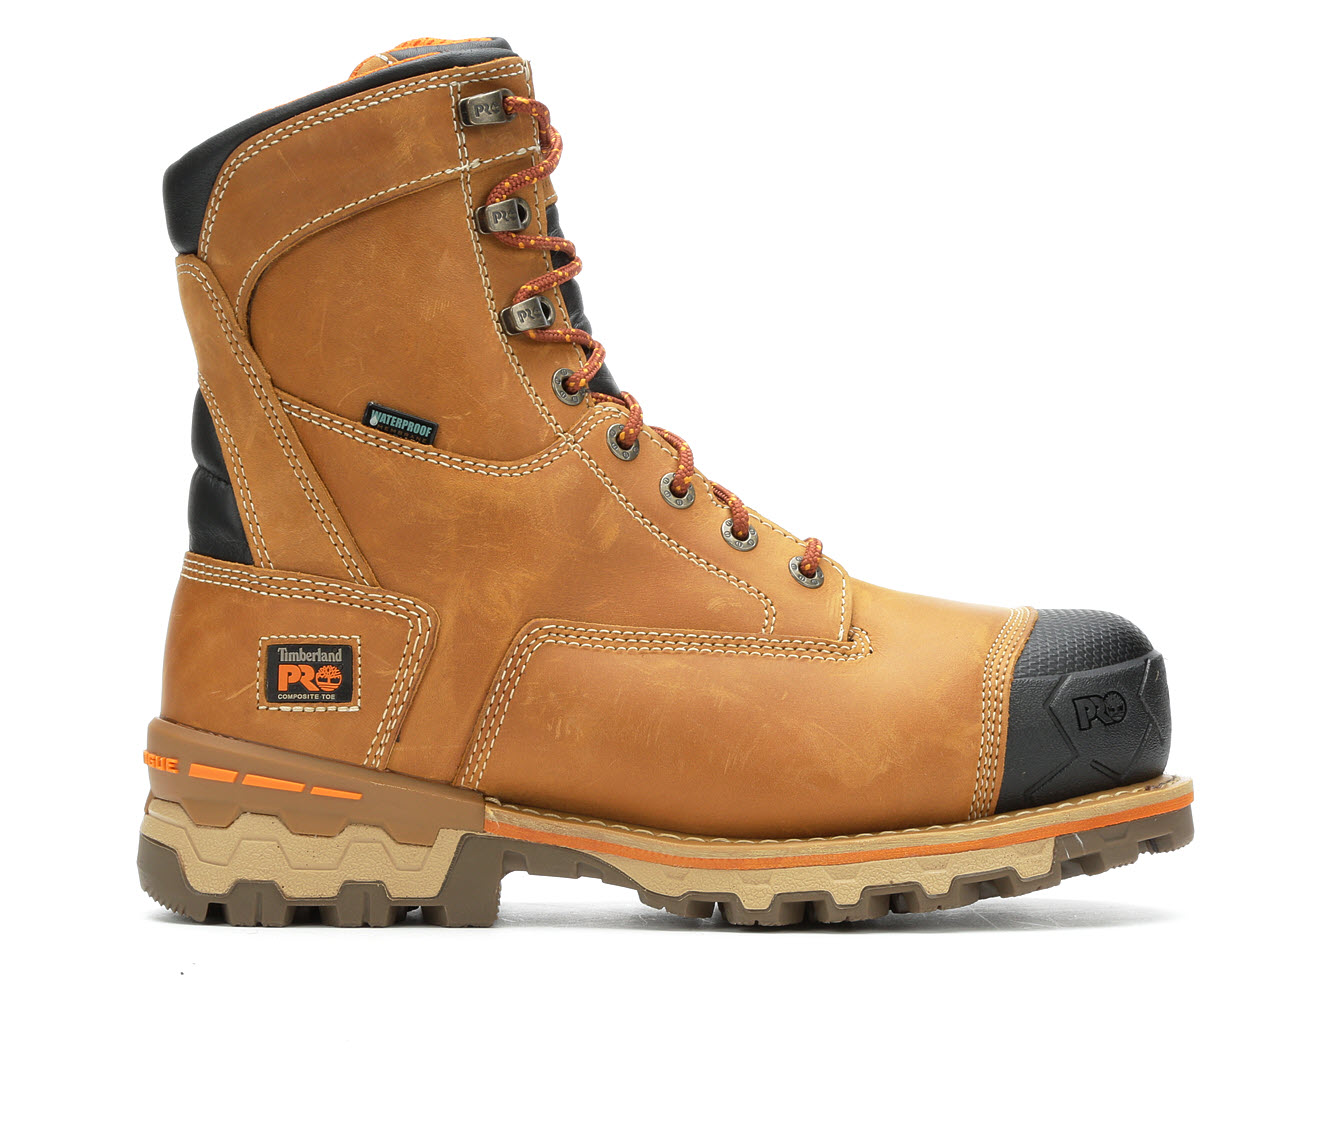 Timberland Pro Boondock 8-inch Comp Toe Waterproof A1Z3G Men's Boots (Beige Leather)